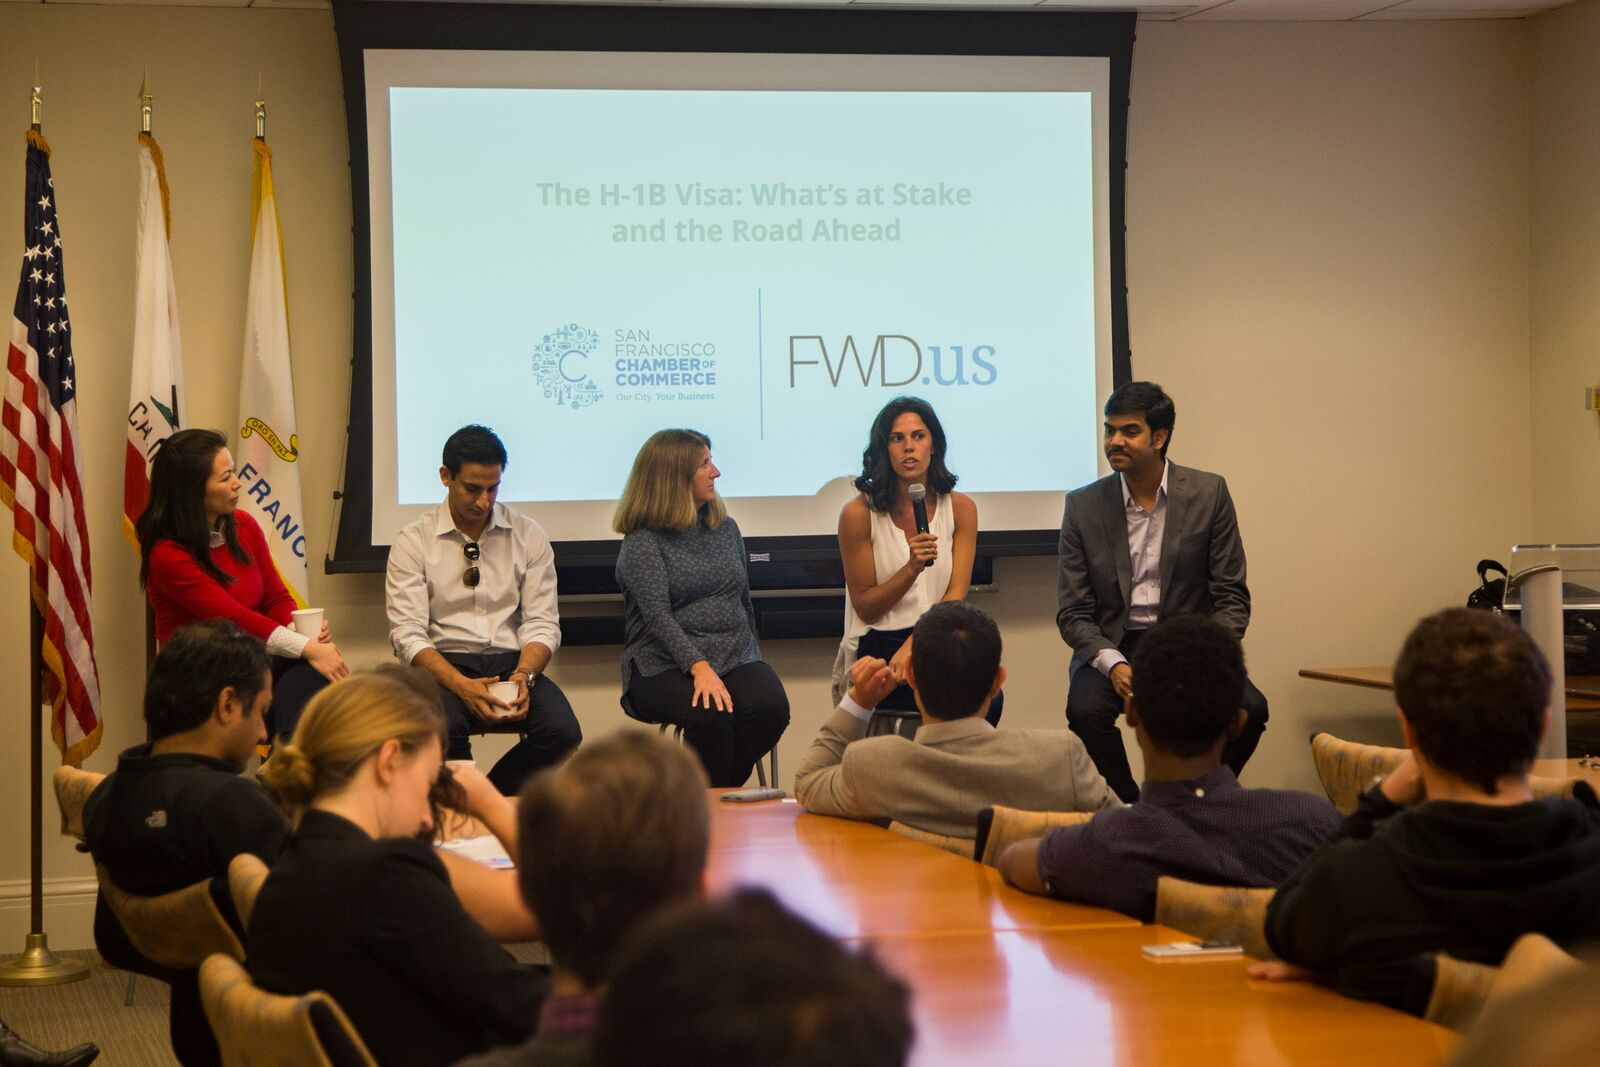 The H-1B Visa_What's at Stake Event_4 3 17_09_preview.jpeg